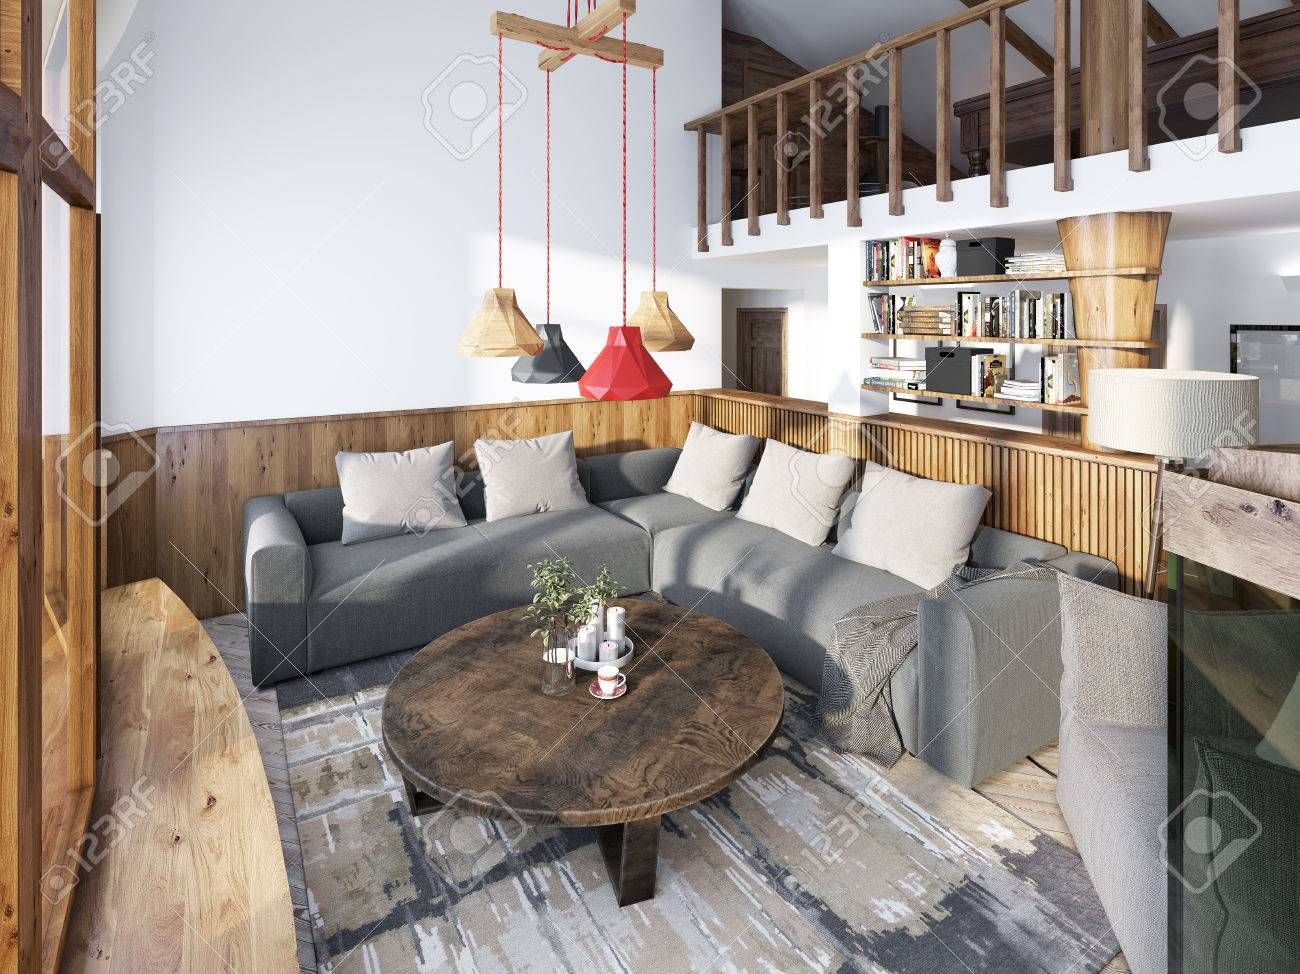 Large Corner Sofa In The Living Room Luxury Loft Style, With Wood Paneled  Walls And